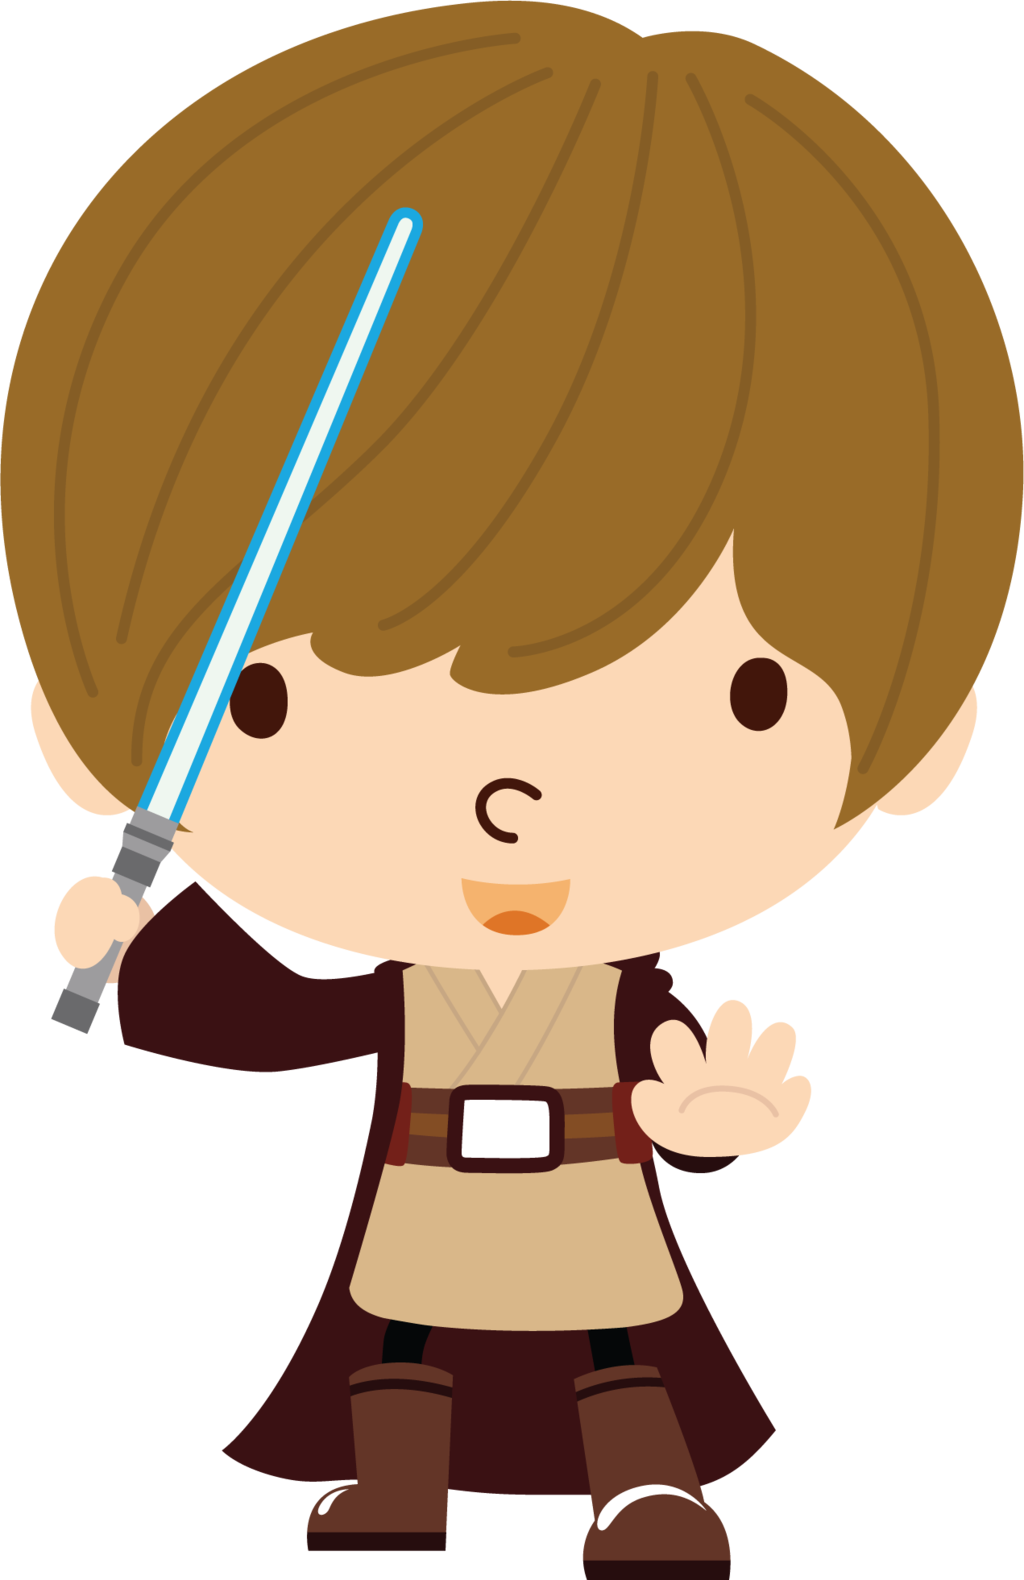 Starwars clipart transparent background. Star wars obi wan